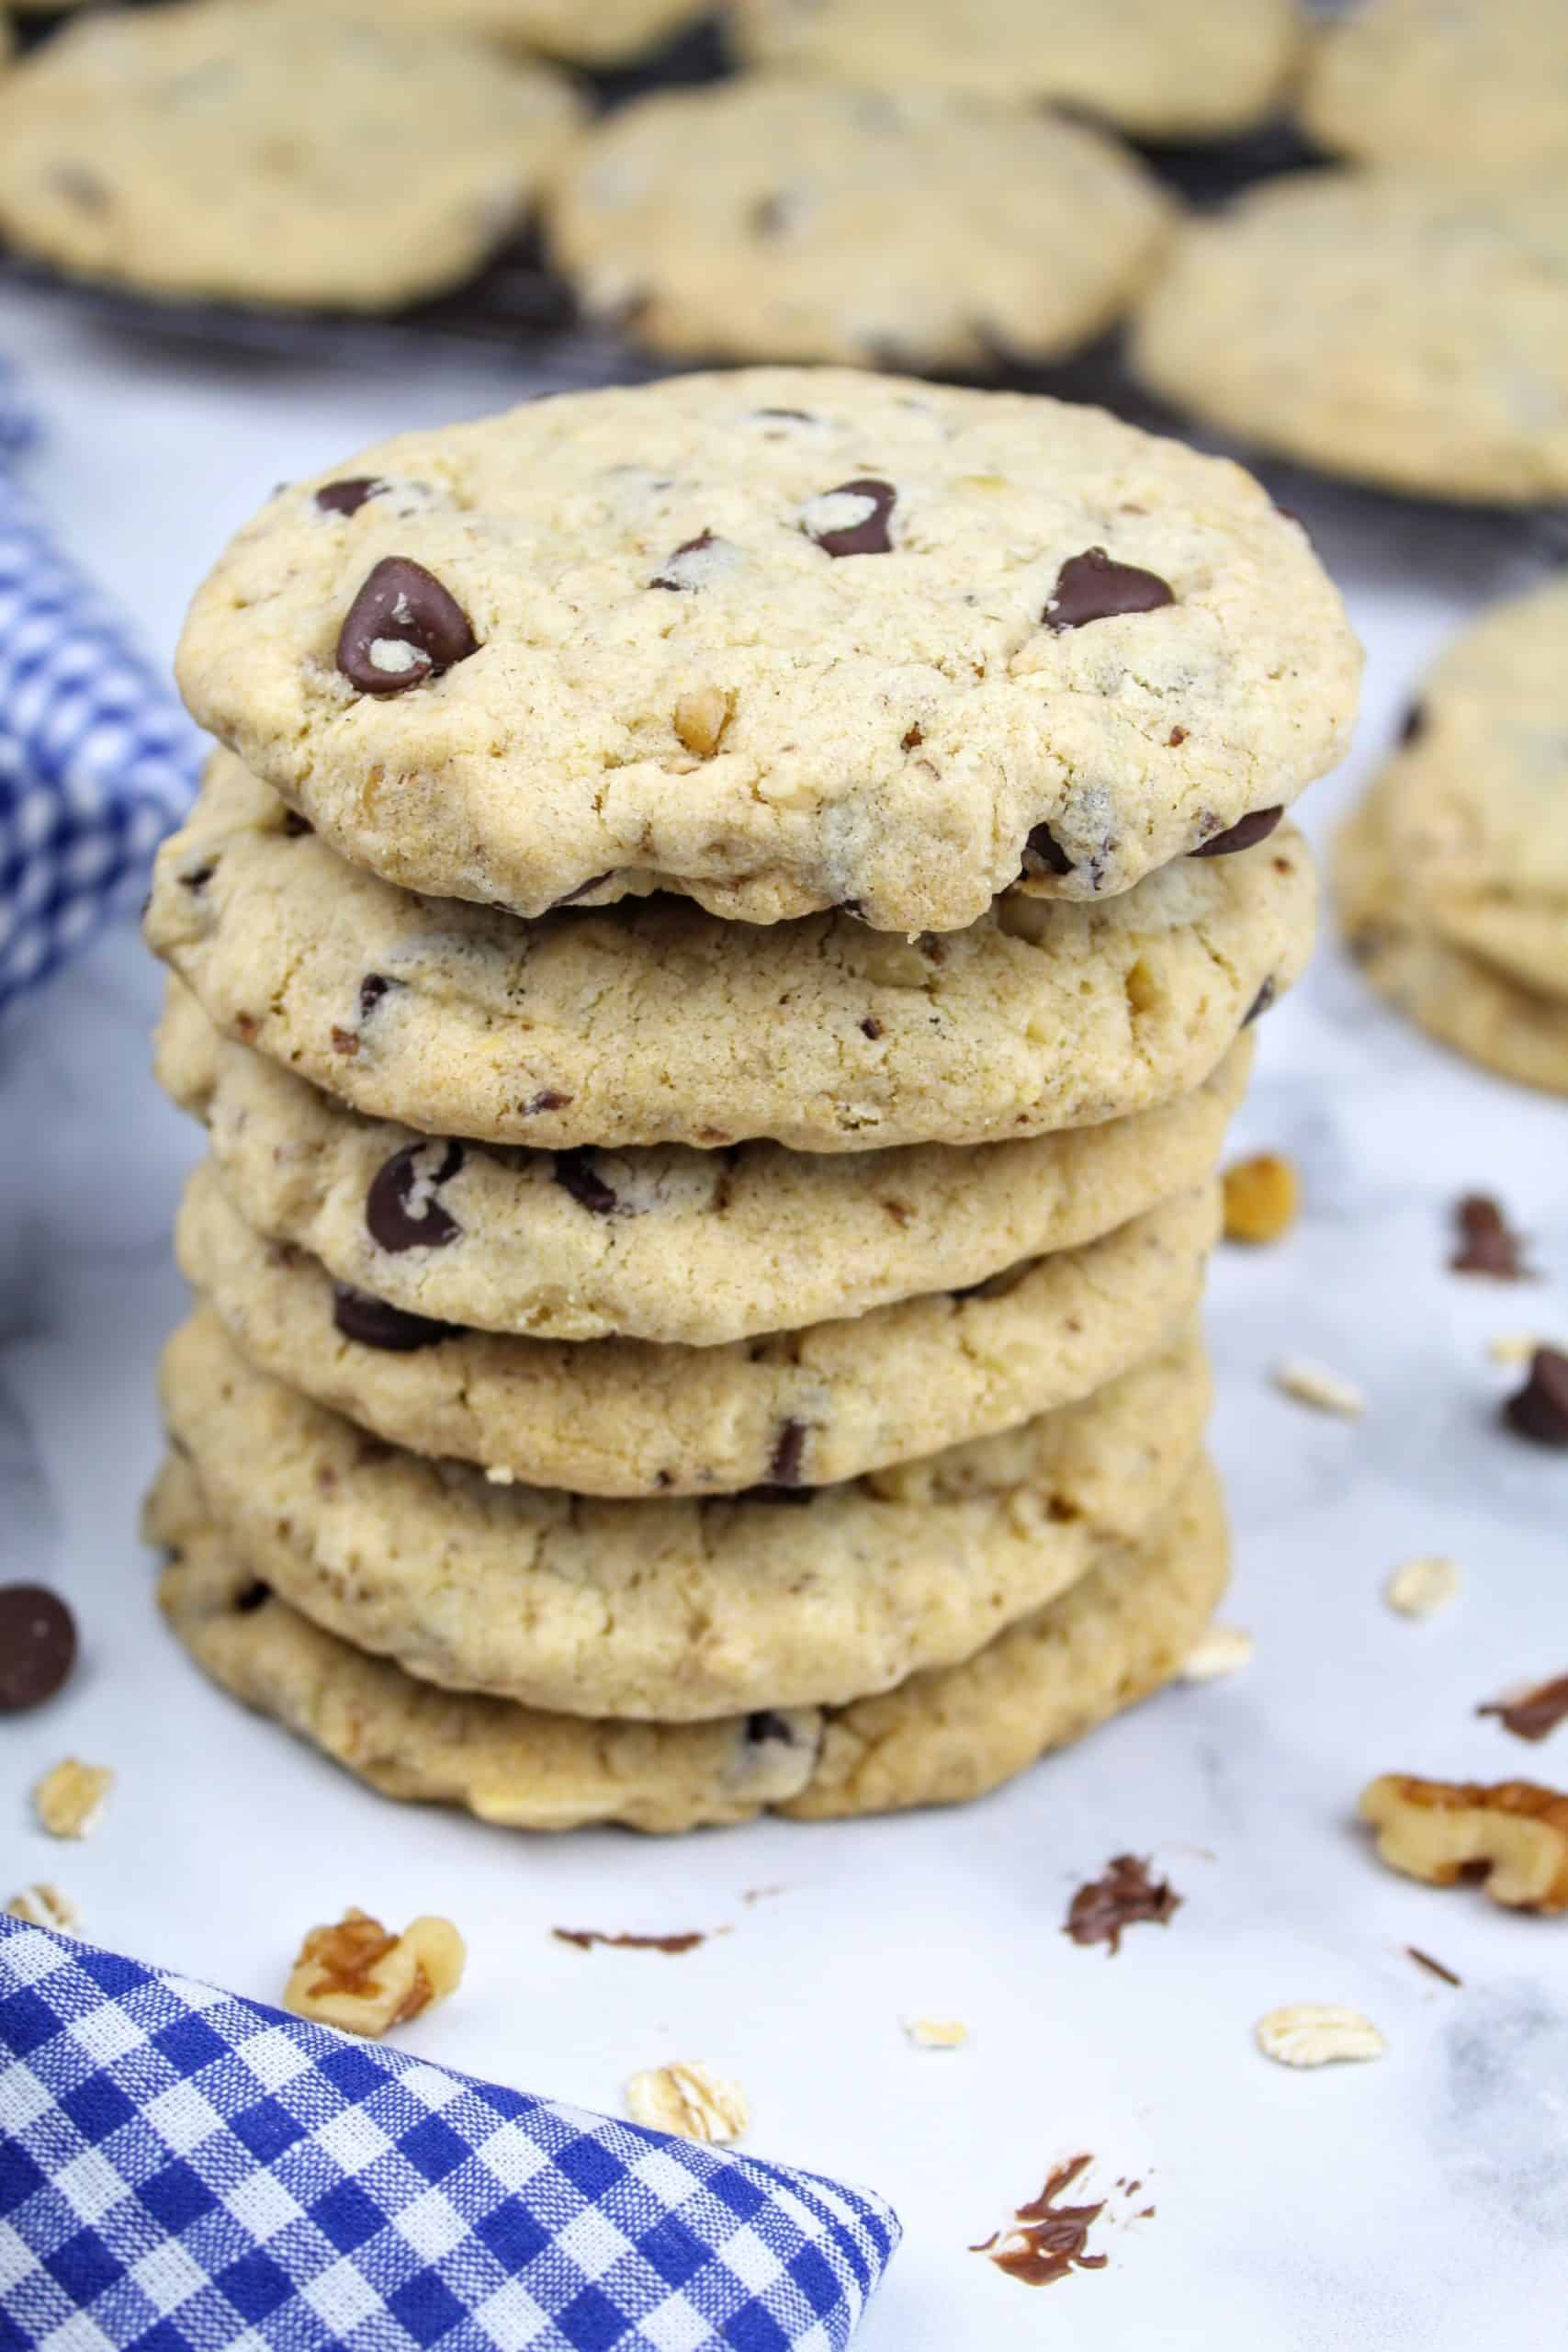 Vegan DoubleTree Chocolate Chip Cookies